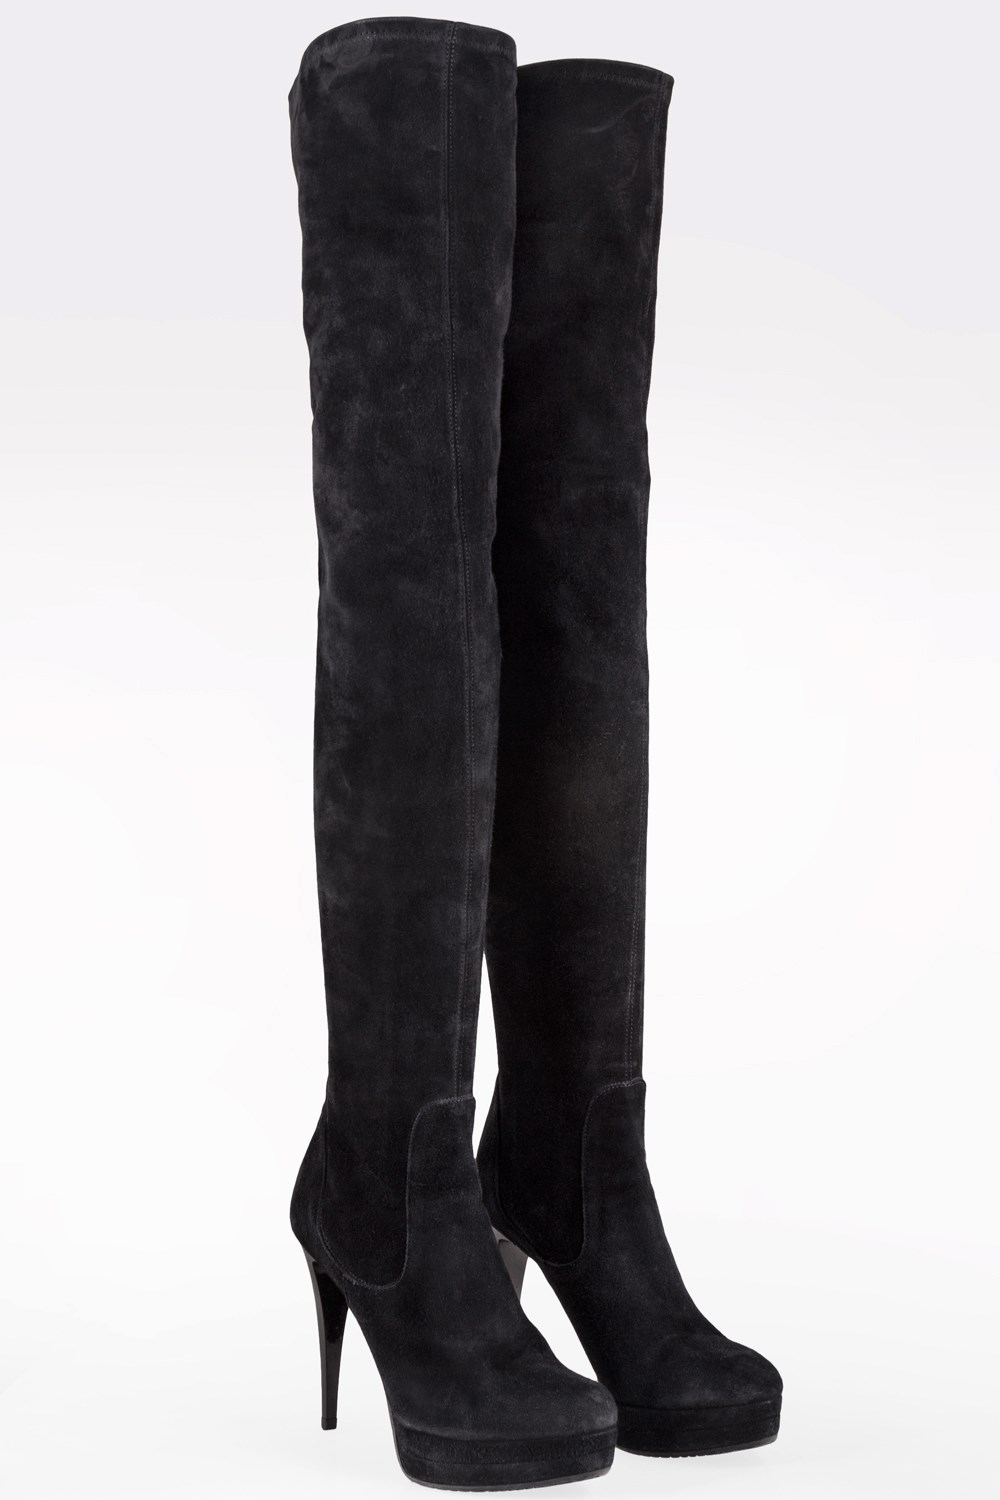 Black Suede Over-The-Knee Boots / Size